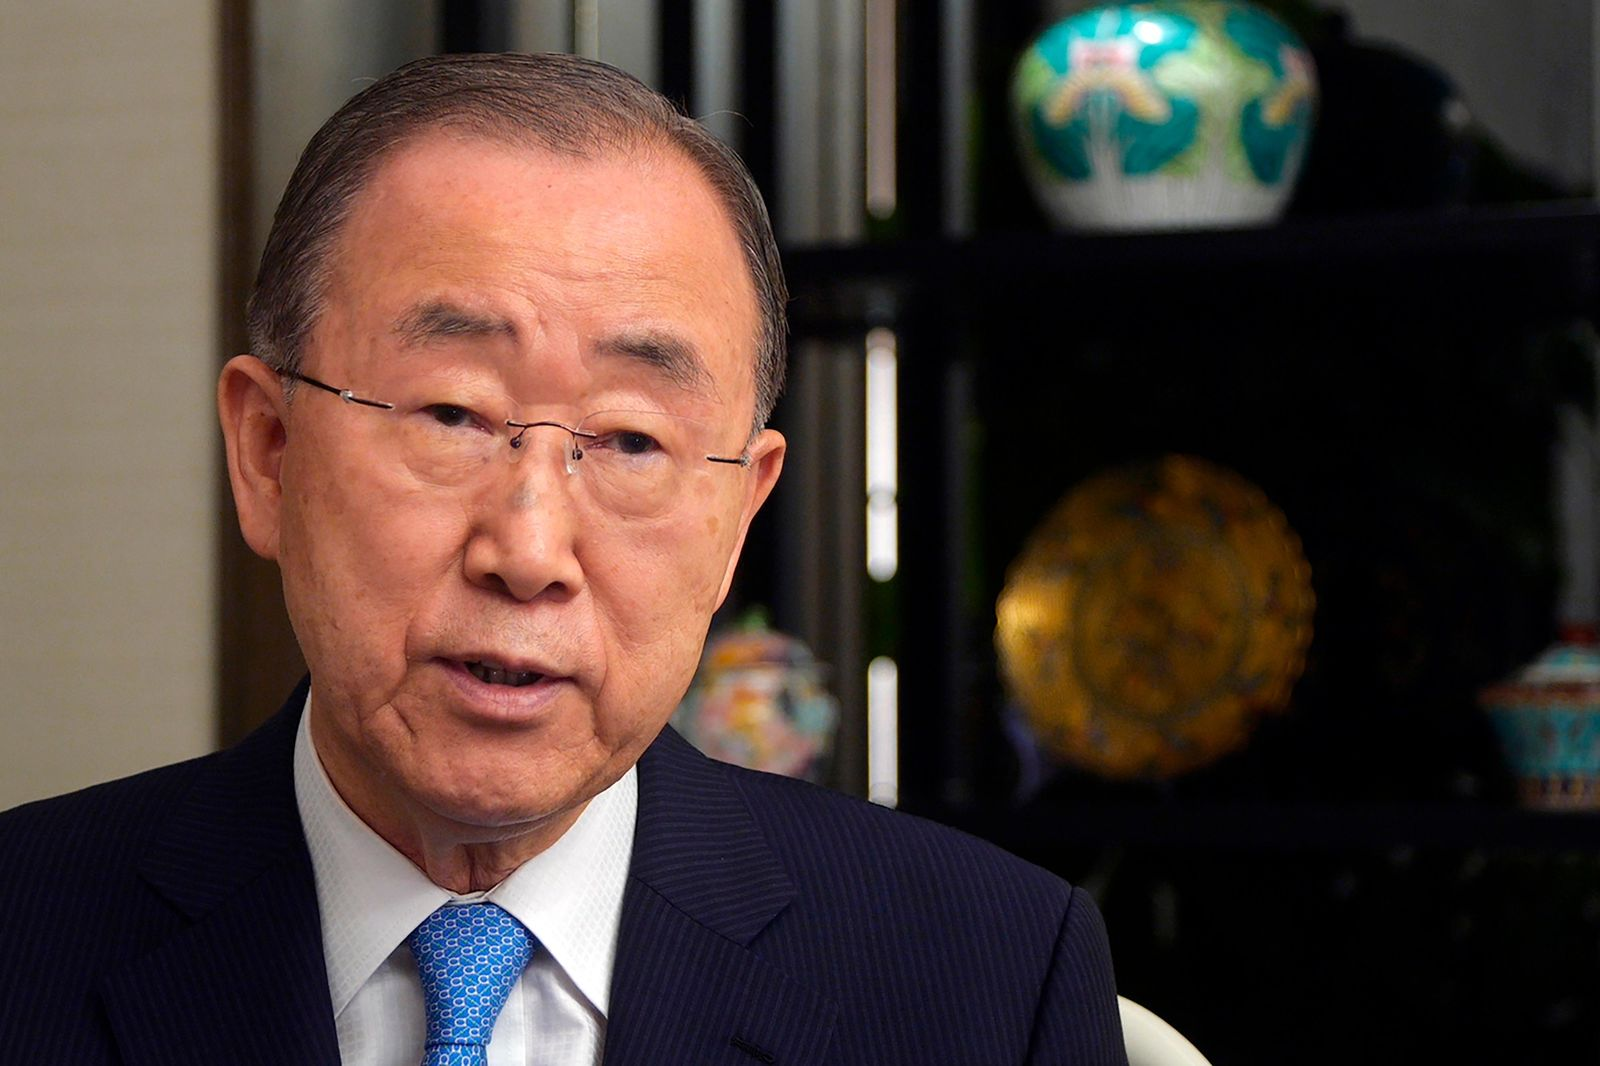 CORRECTS DATE - In this Monday, Sept. 9, 2019, photo, former U.N. Secretary-General Ban Ki-moon speaks during an interview on the sidelines of a press conference for the release of a report on adapting to climate change in Beijing. (AP Photo/Sam McNeil)